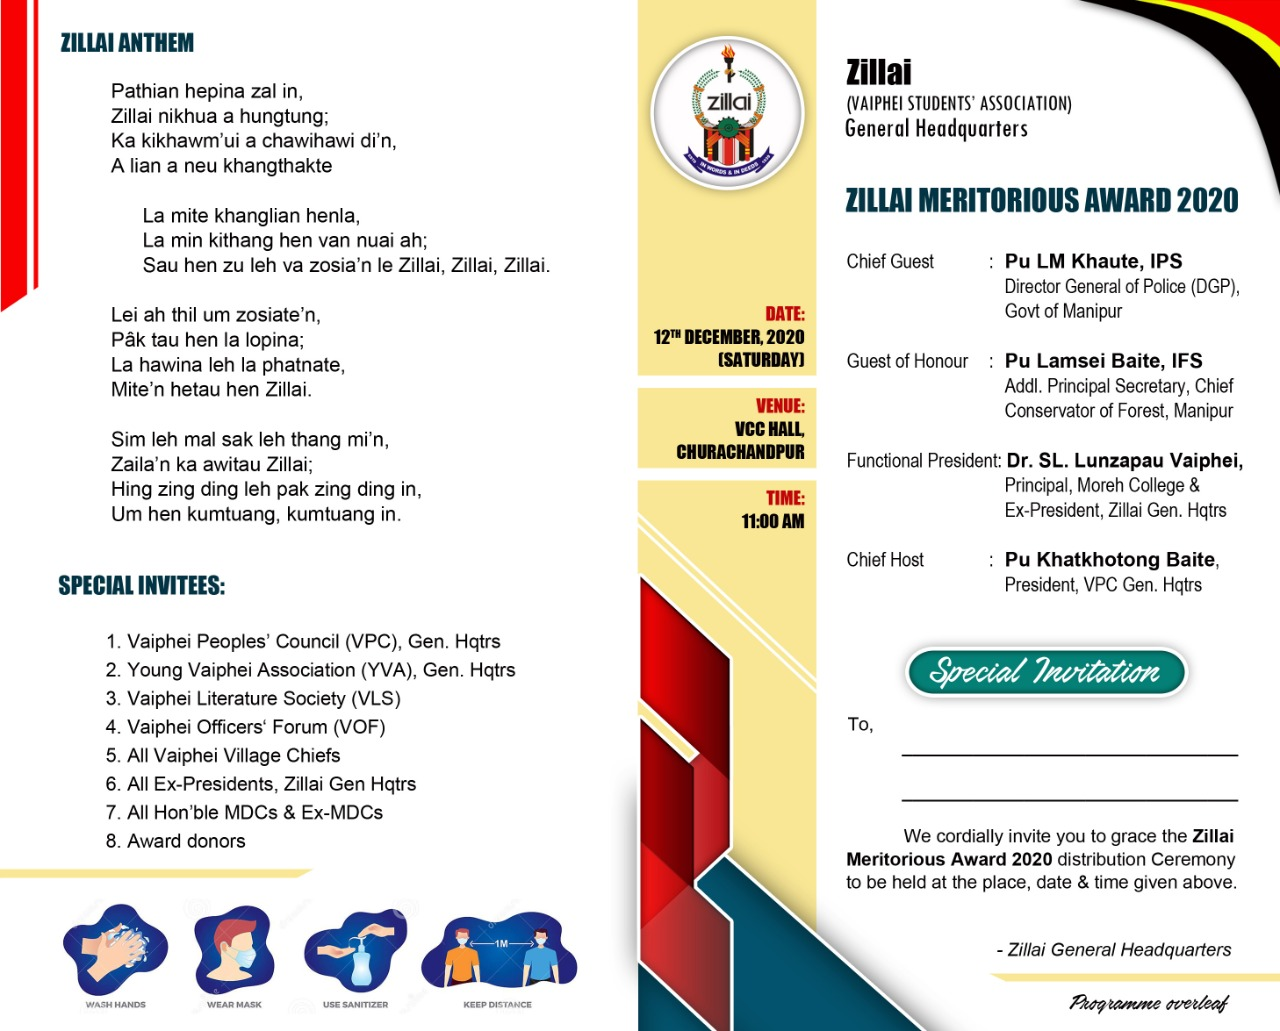 Zillai Meritorious Award 2020